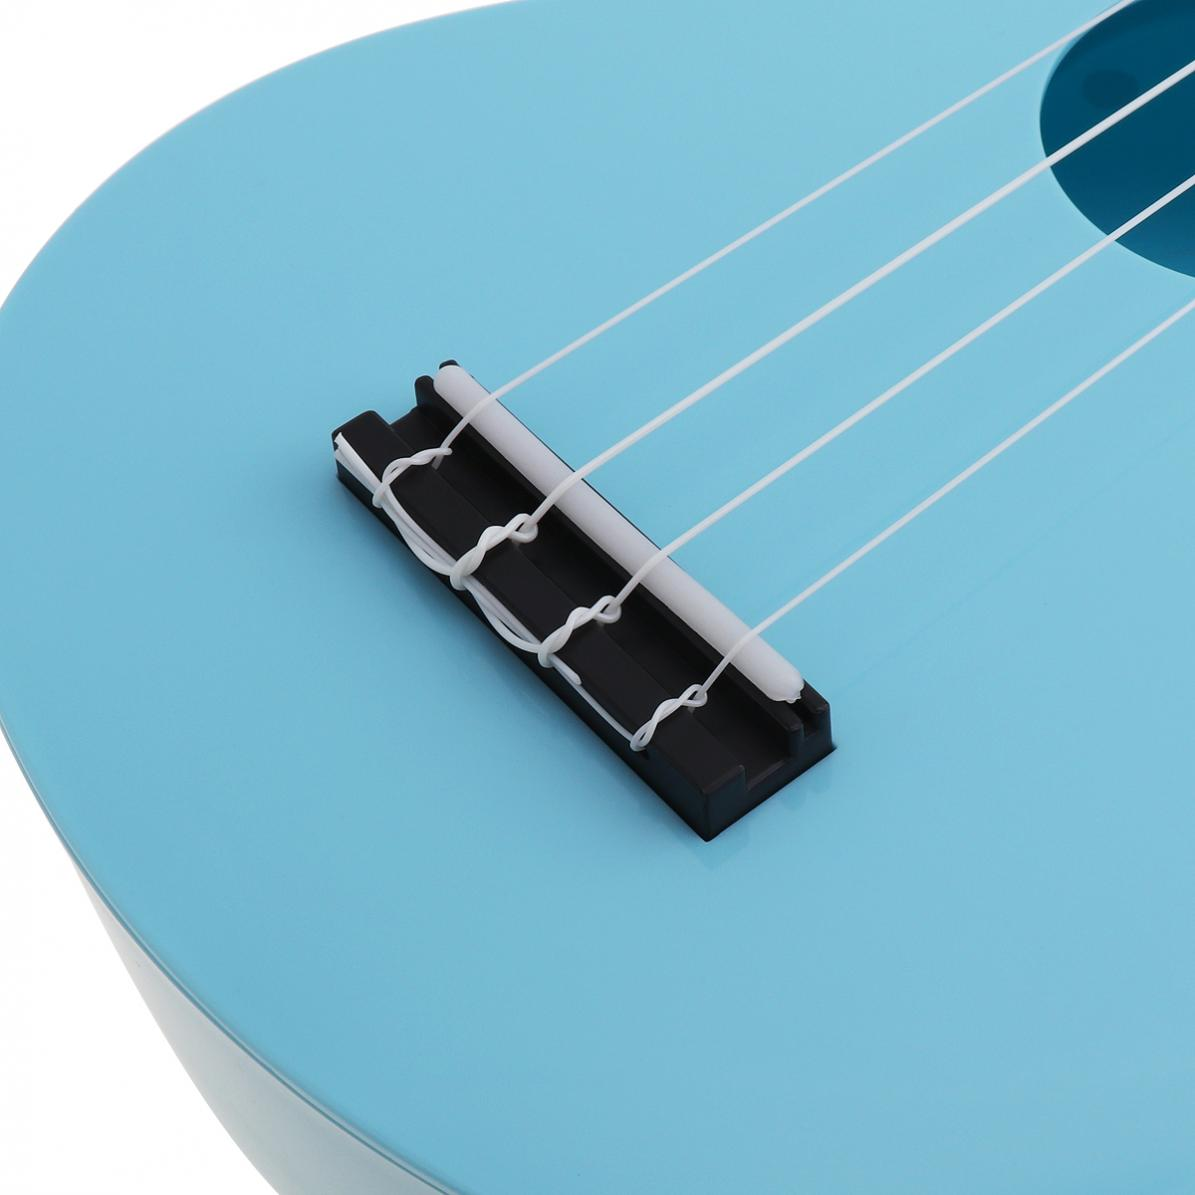 21 Inch Soprano Ukulele Colorful Acoustic 4 Strings  Plastic Hawaii Guitar Instrument for Children and Music Beginner enlarge